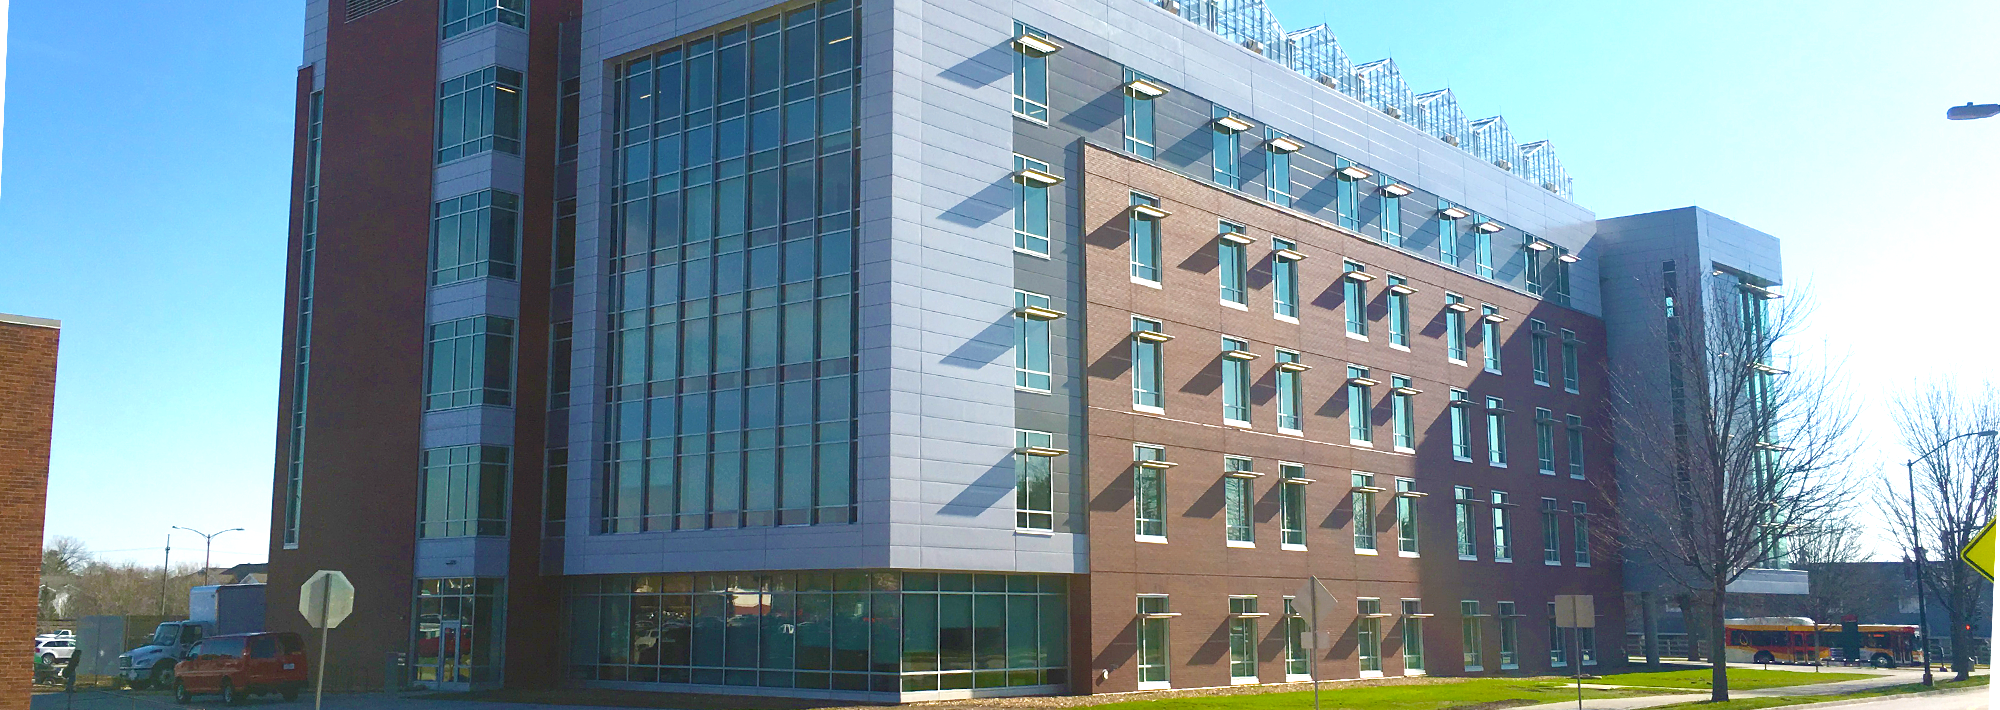 A lovely view of the new ATRB building on a spring day.